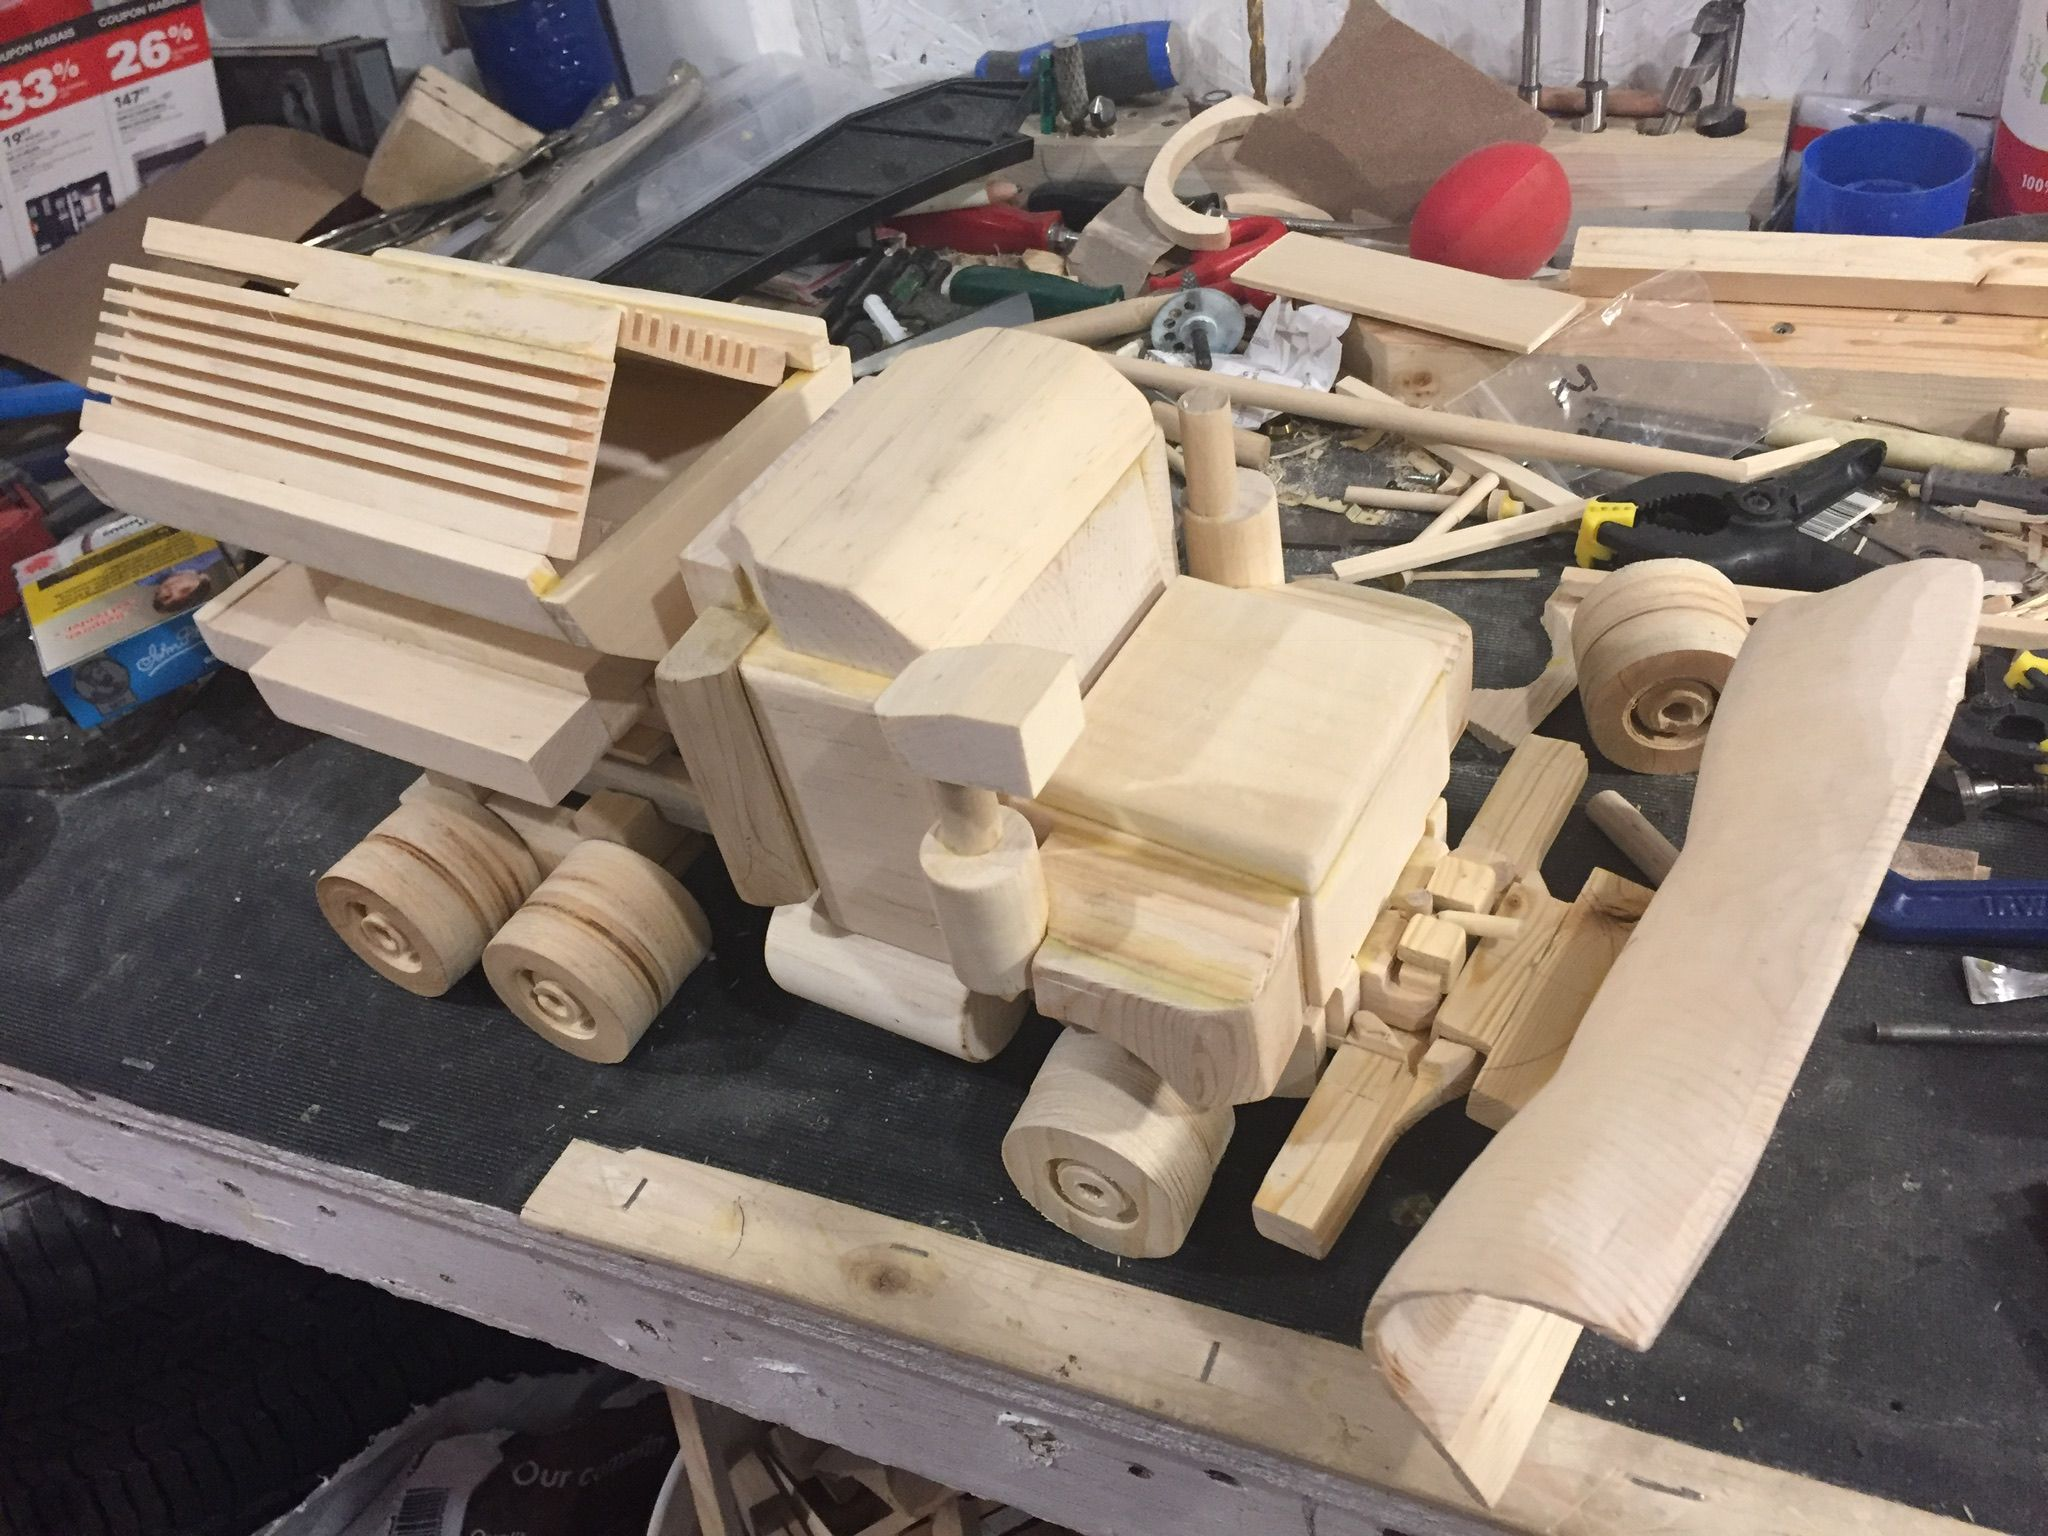 Wooden toys images  Pin by Marek Niko on wooden toys  Pinterest  Wooden toys Wood